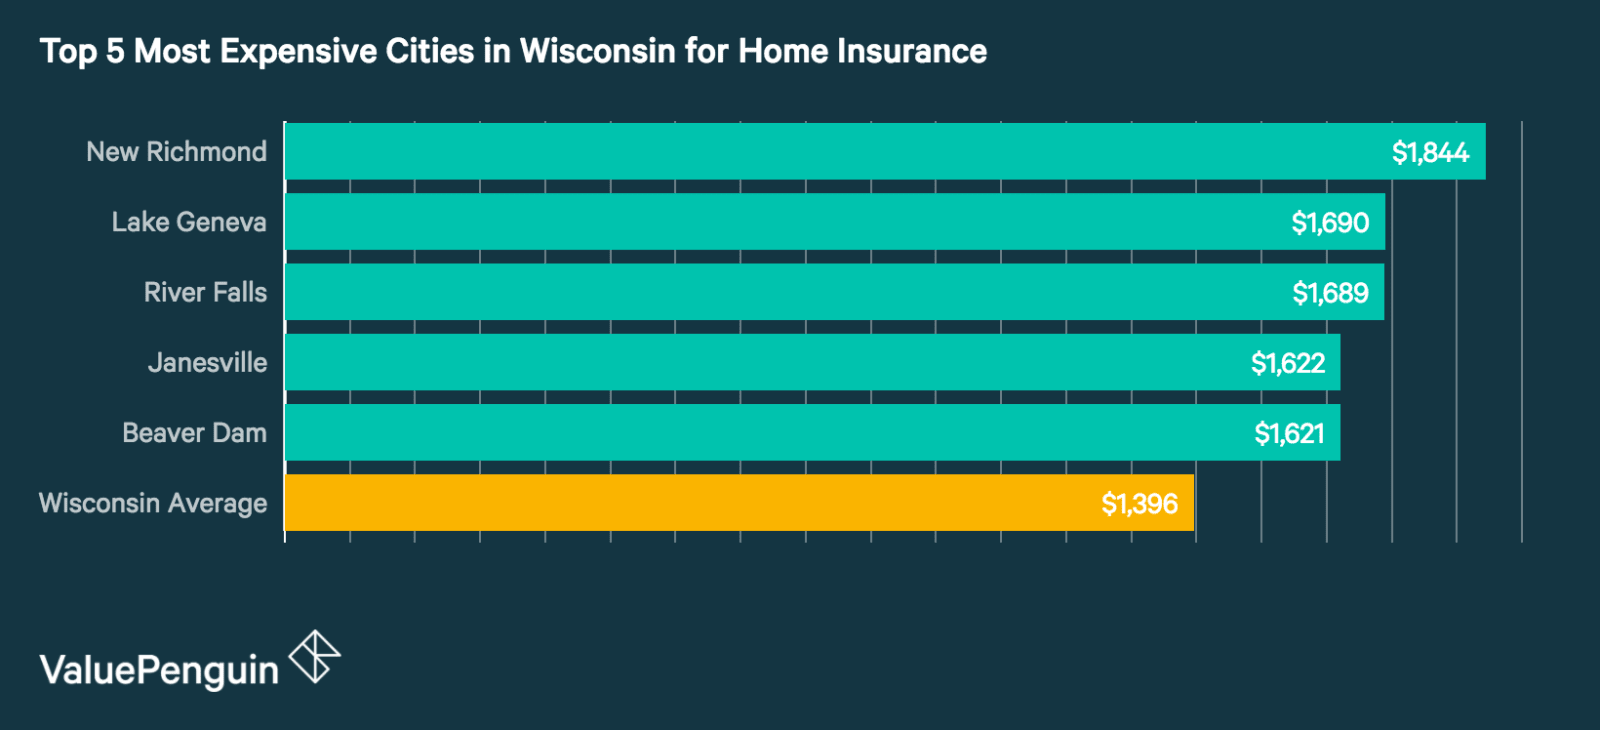 Top 5 Most Expensive Cities in Wisconsin for Homeowners Insurance